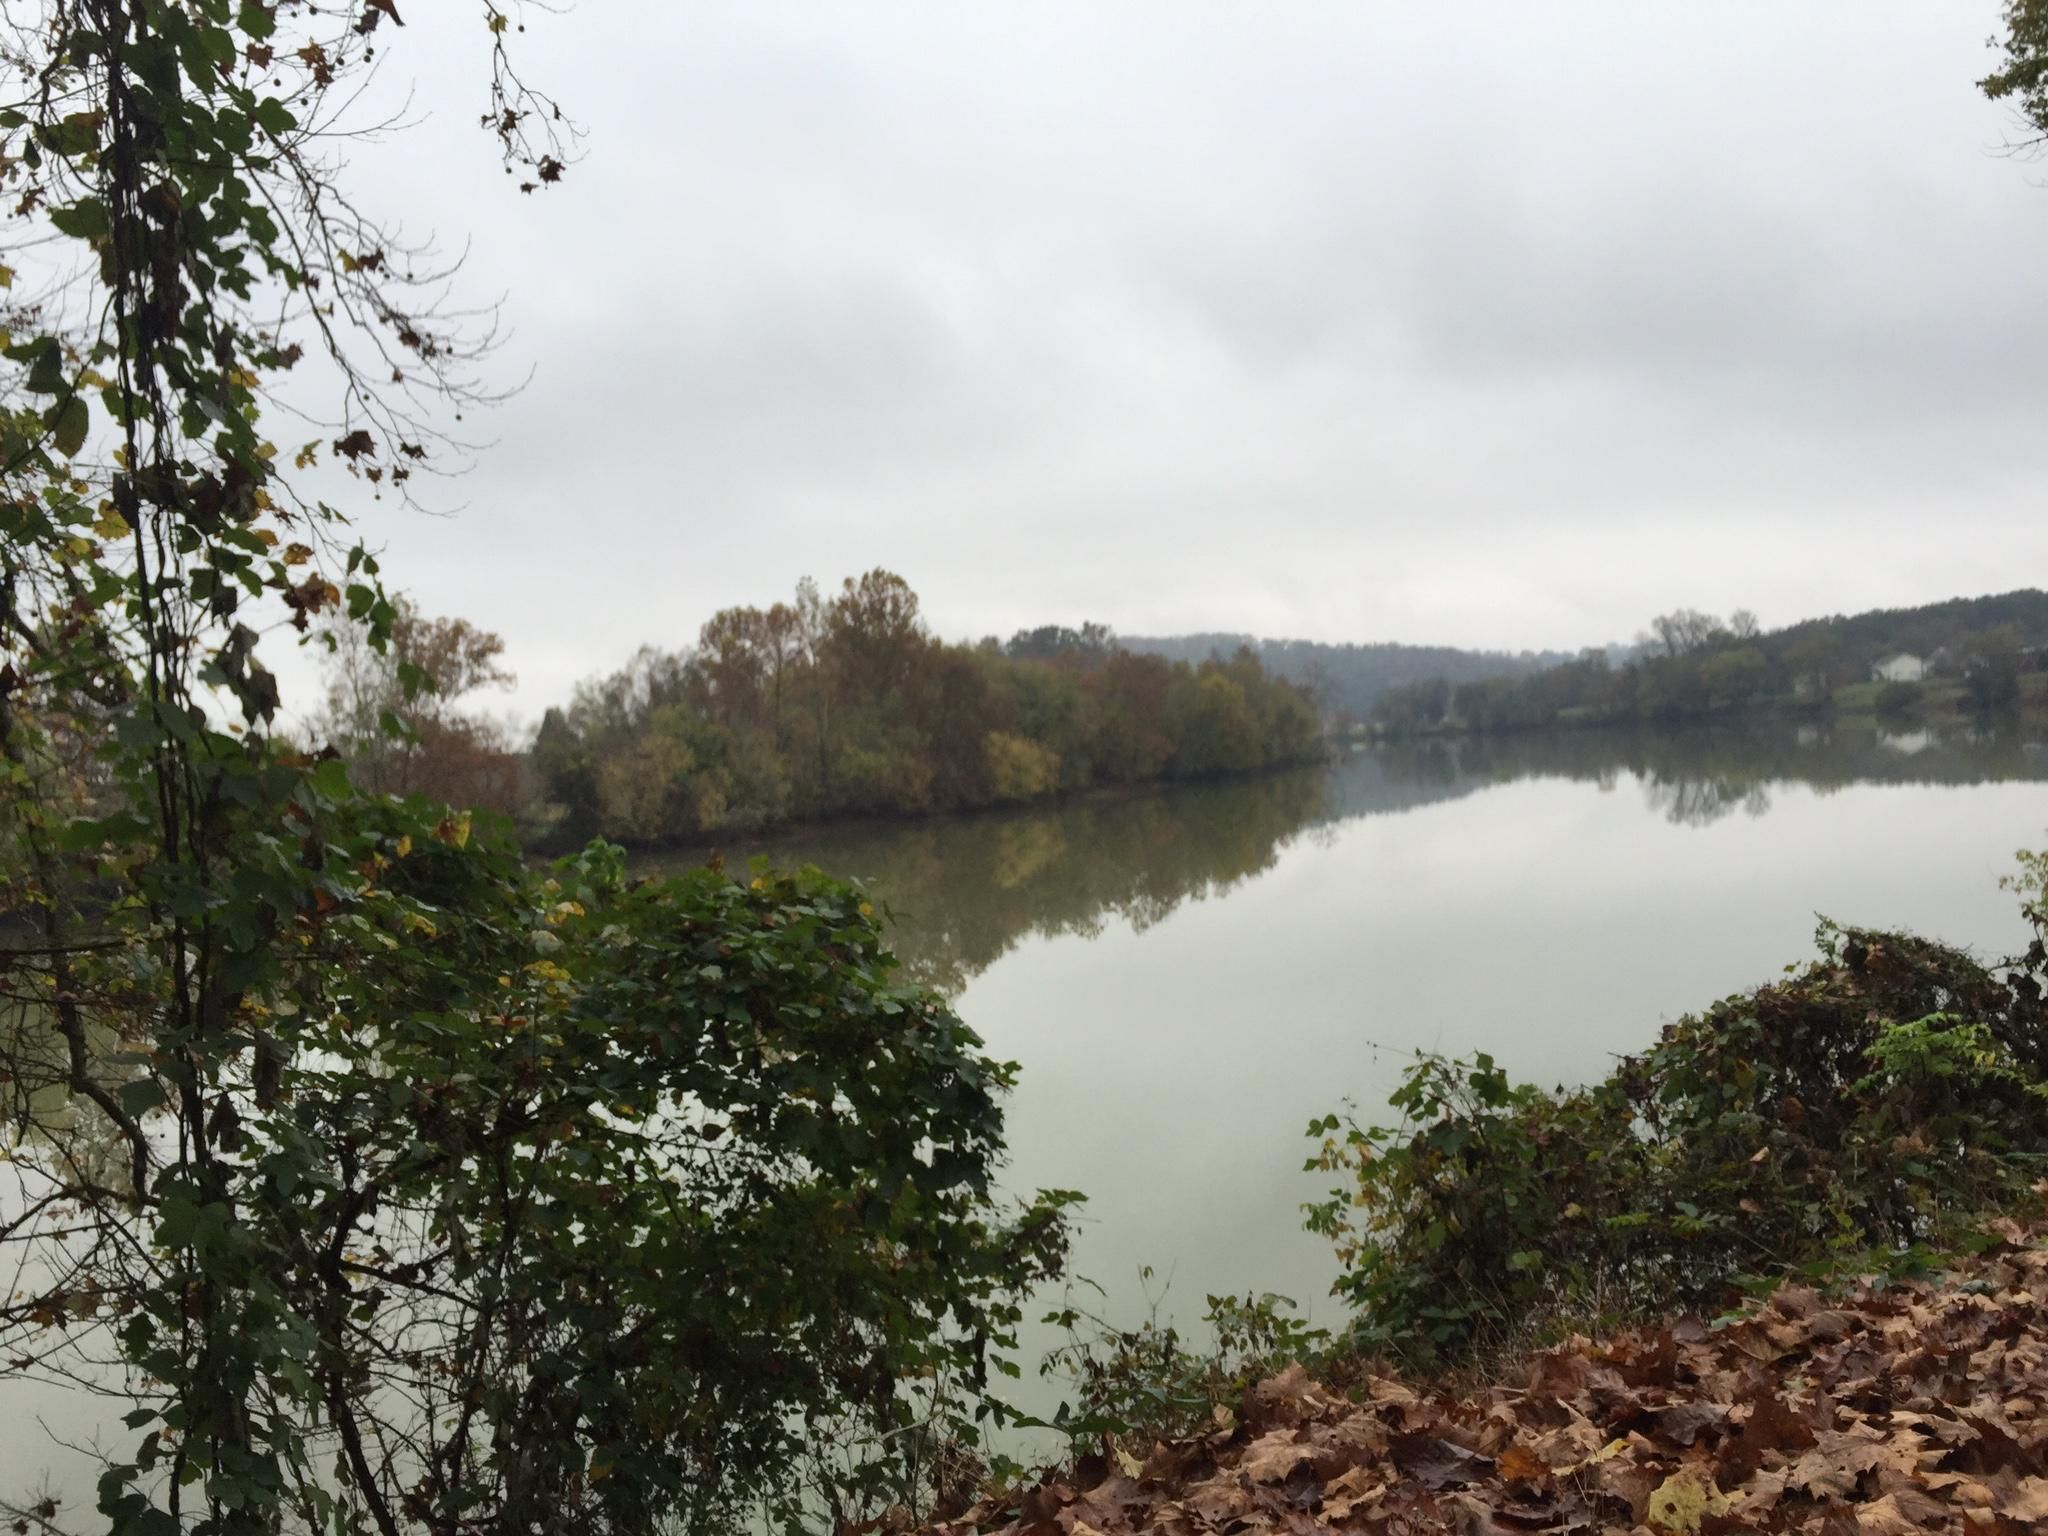 French Broad nearby